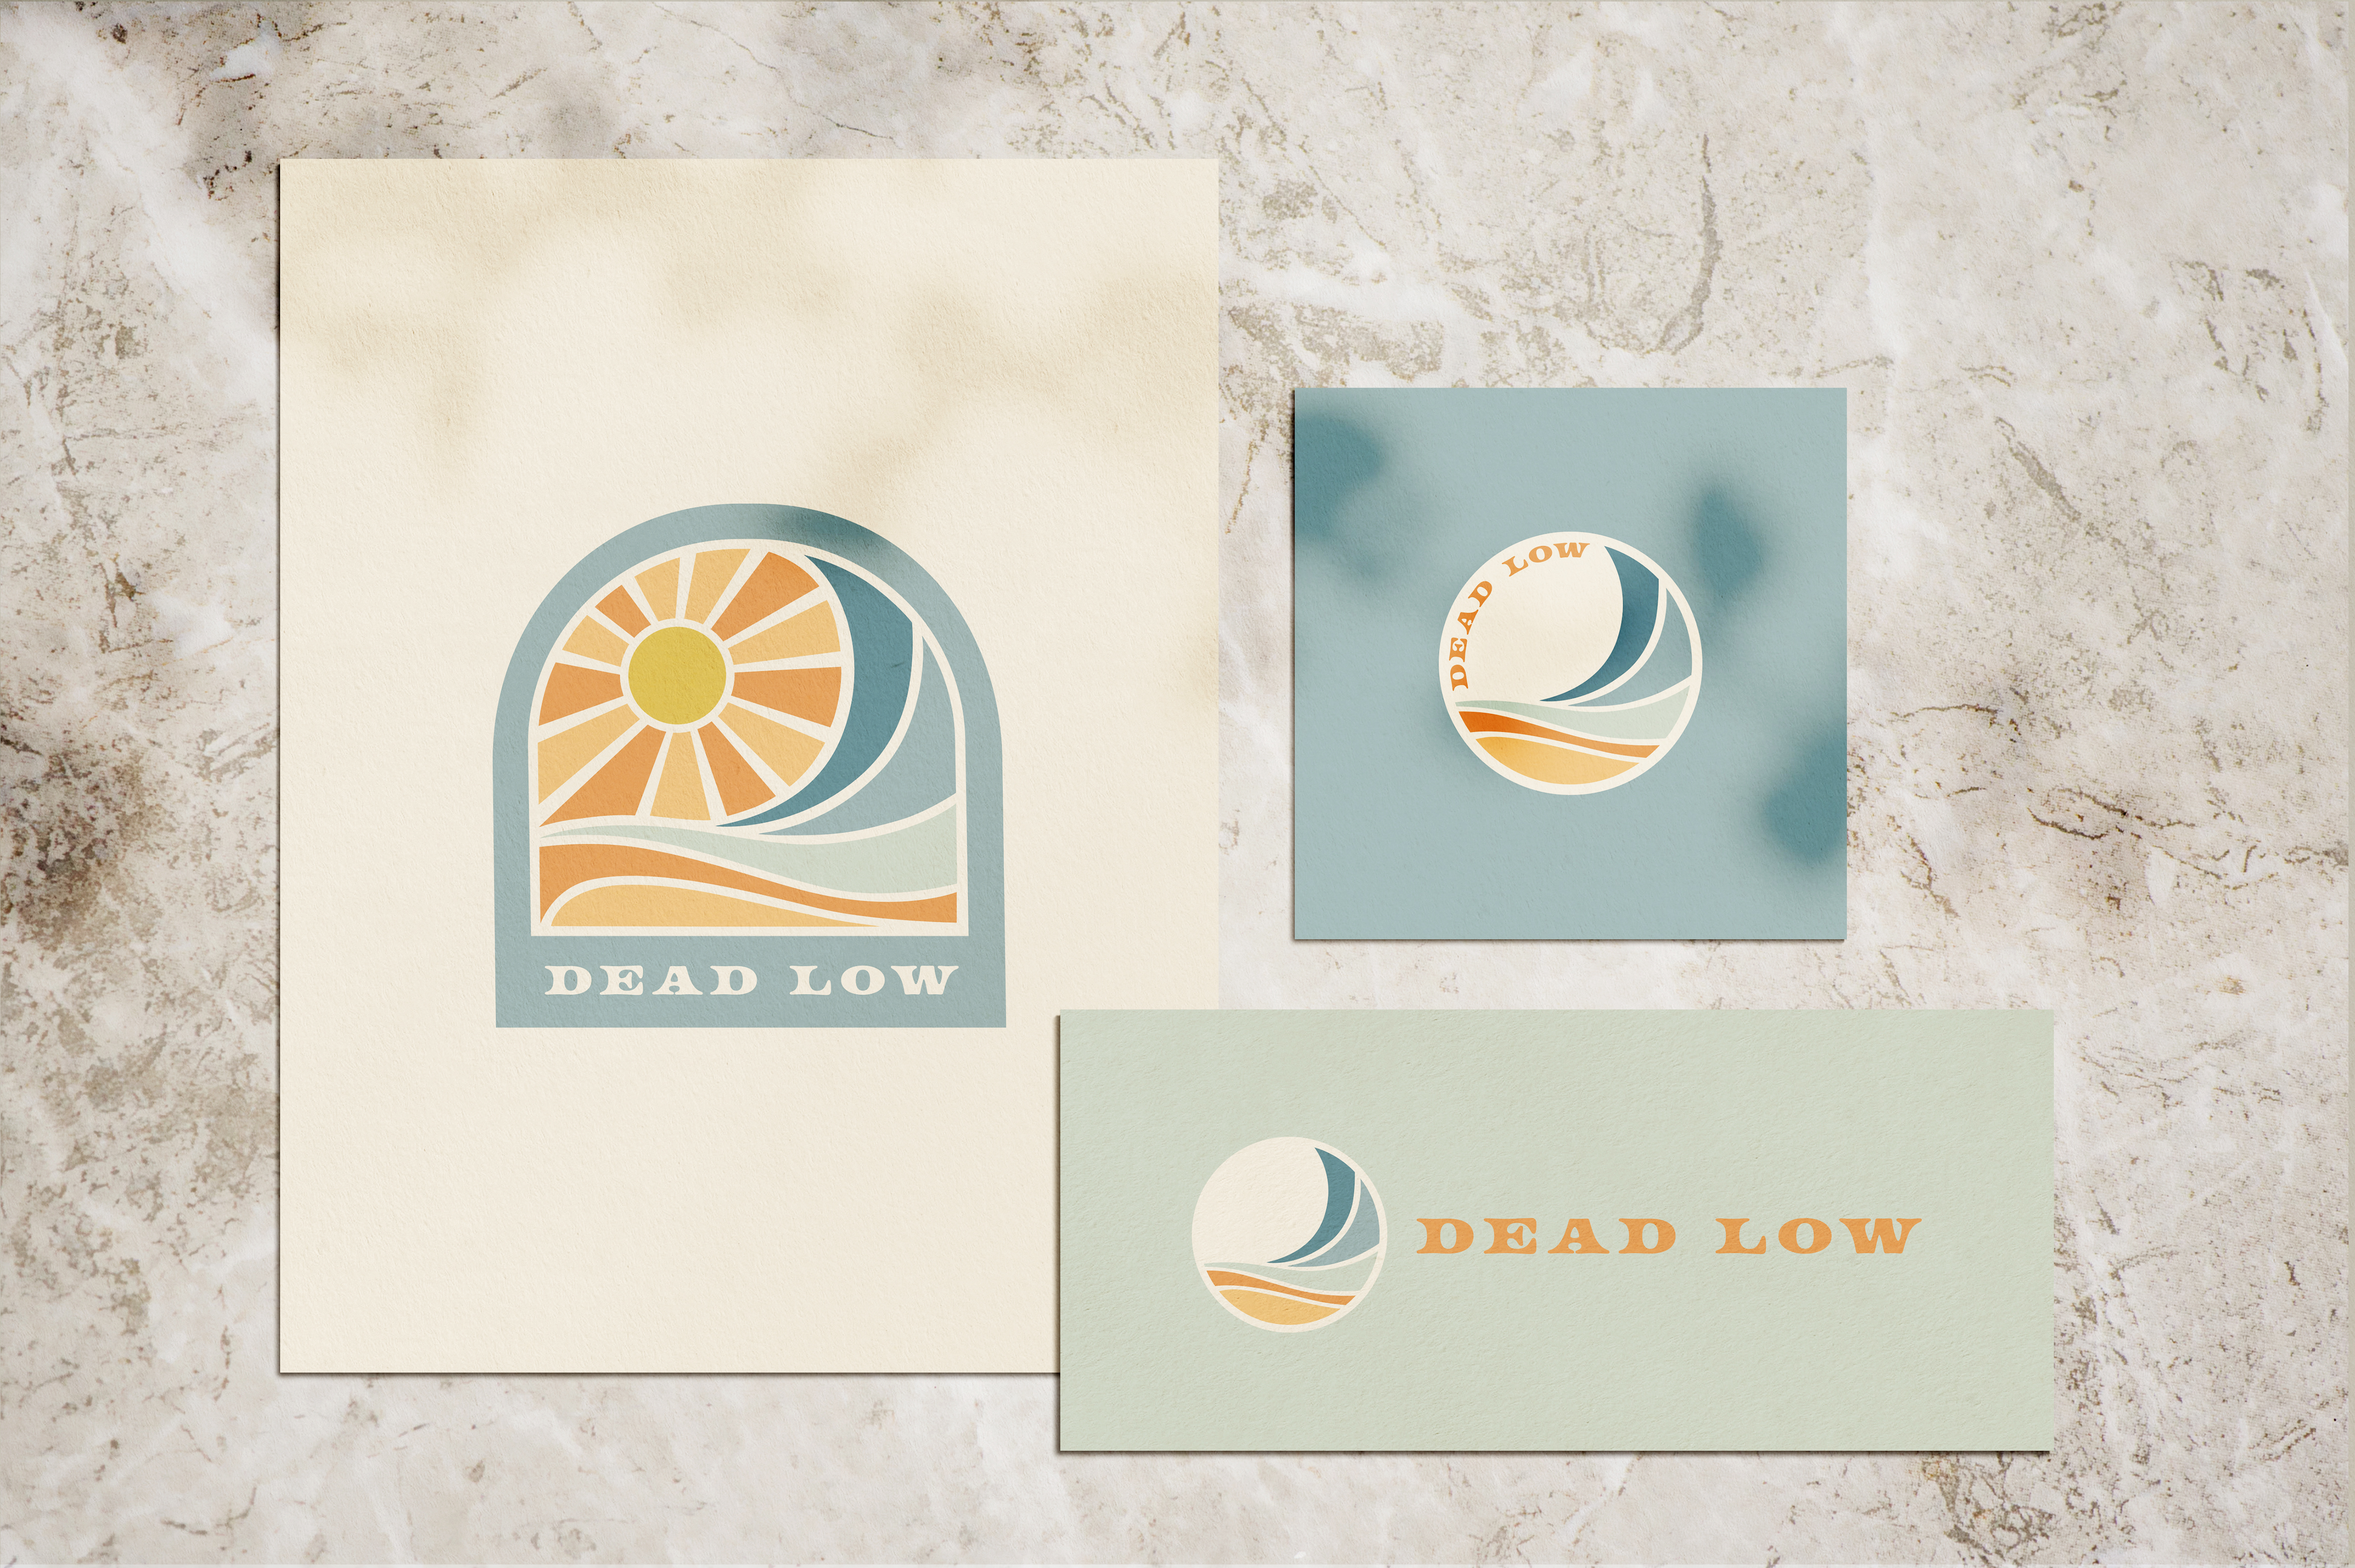 Shop Dead Low stationery